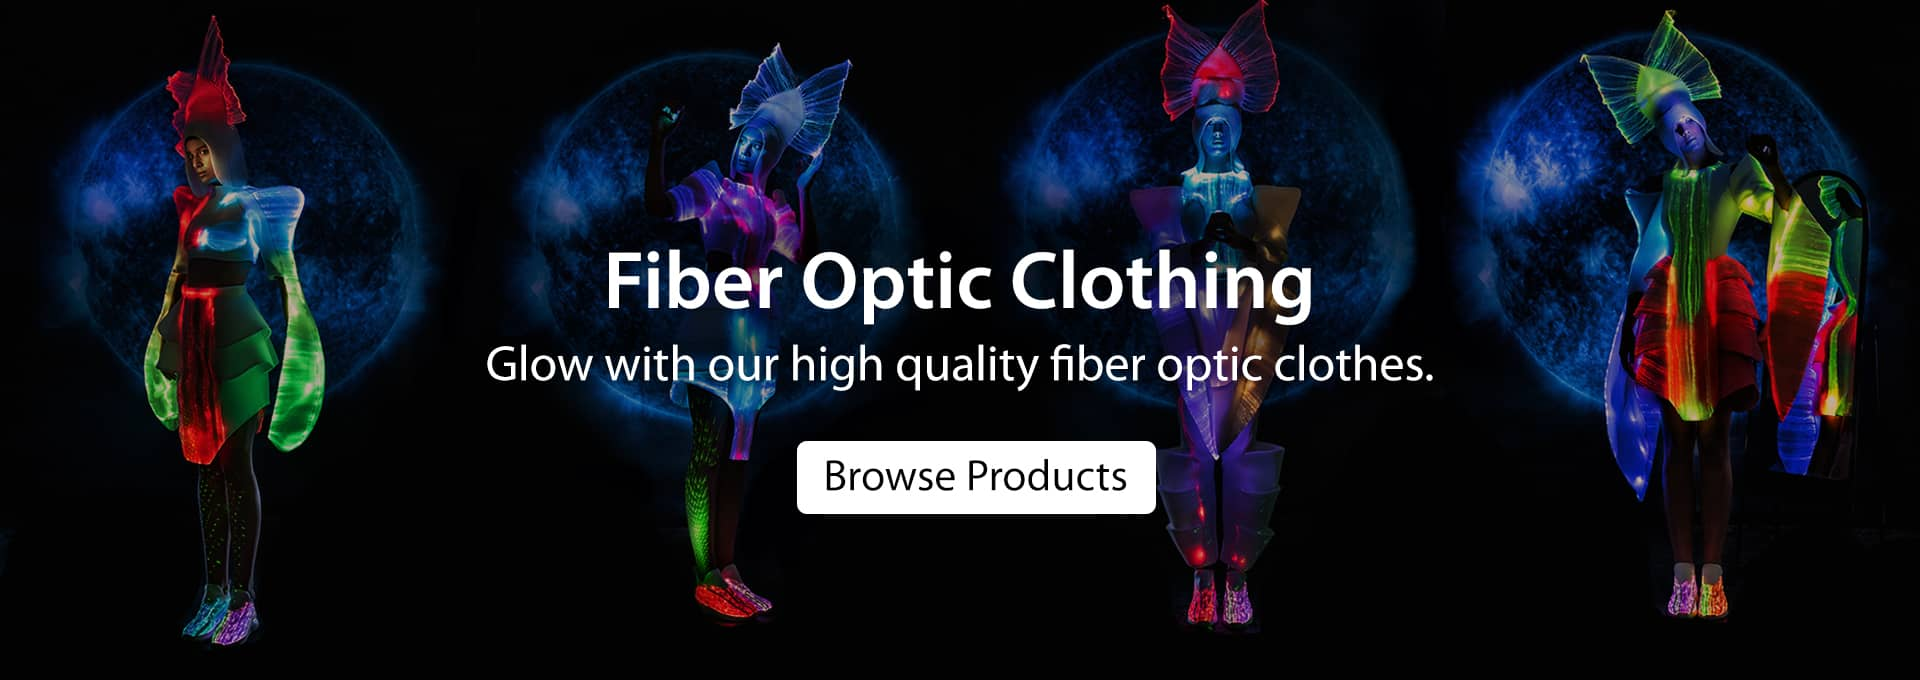 Browse Fiber Optic Clothing Products